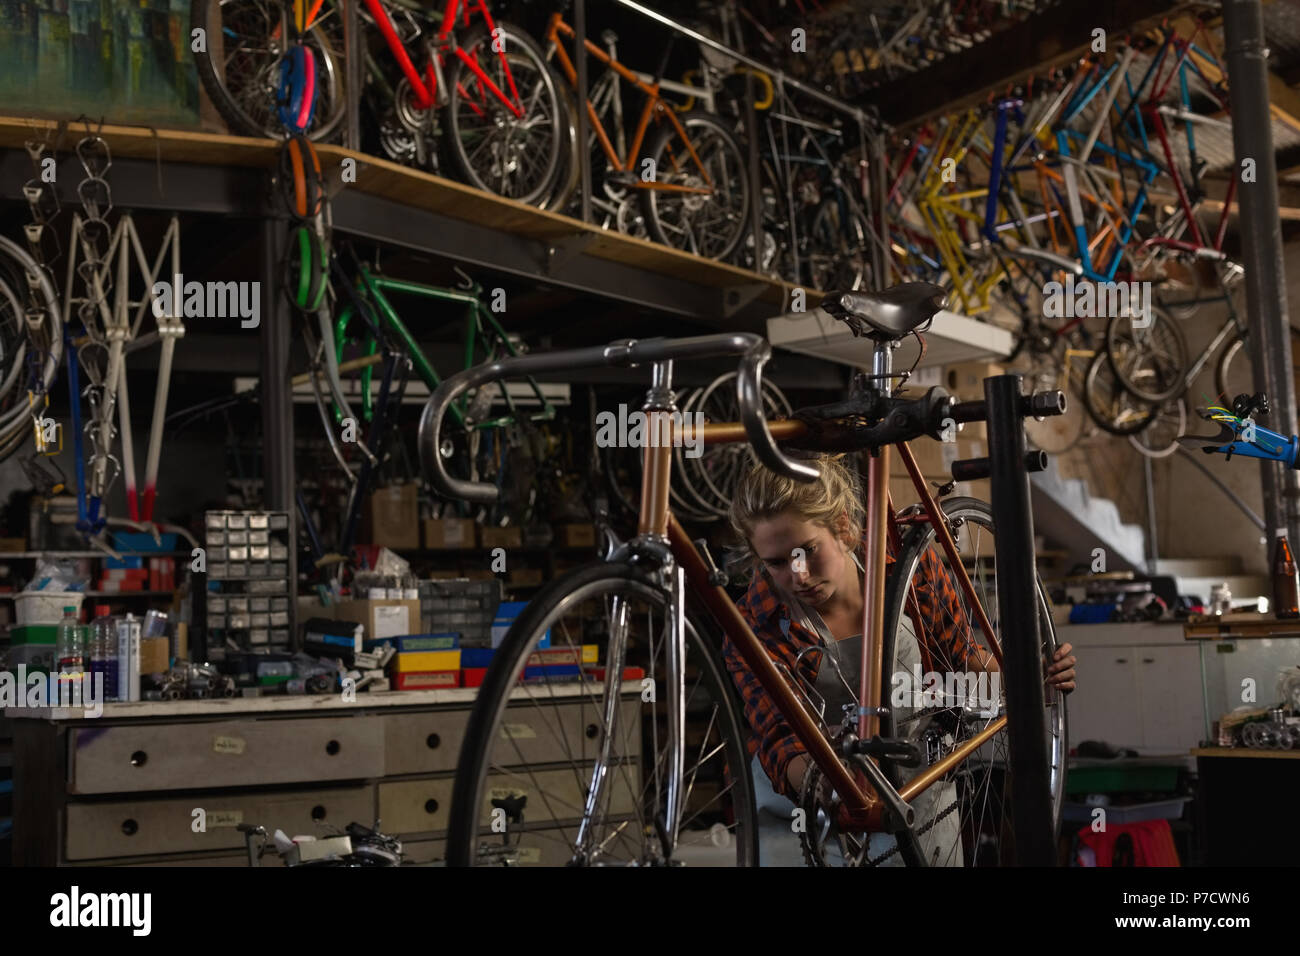 Female mechanic examining a bicycle - Stock Image